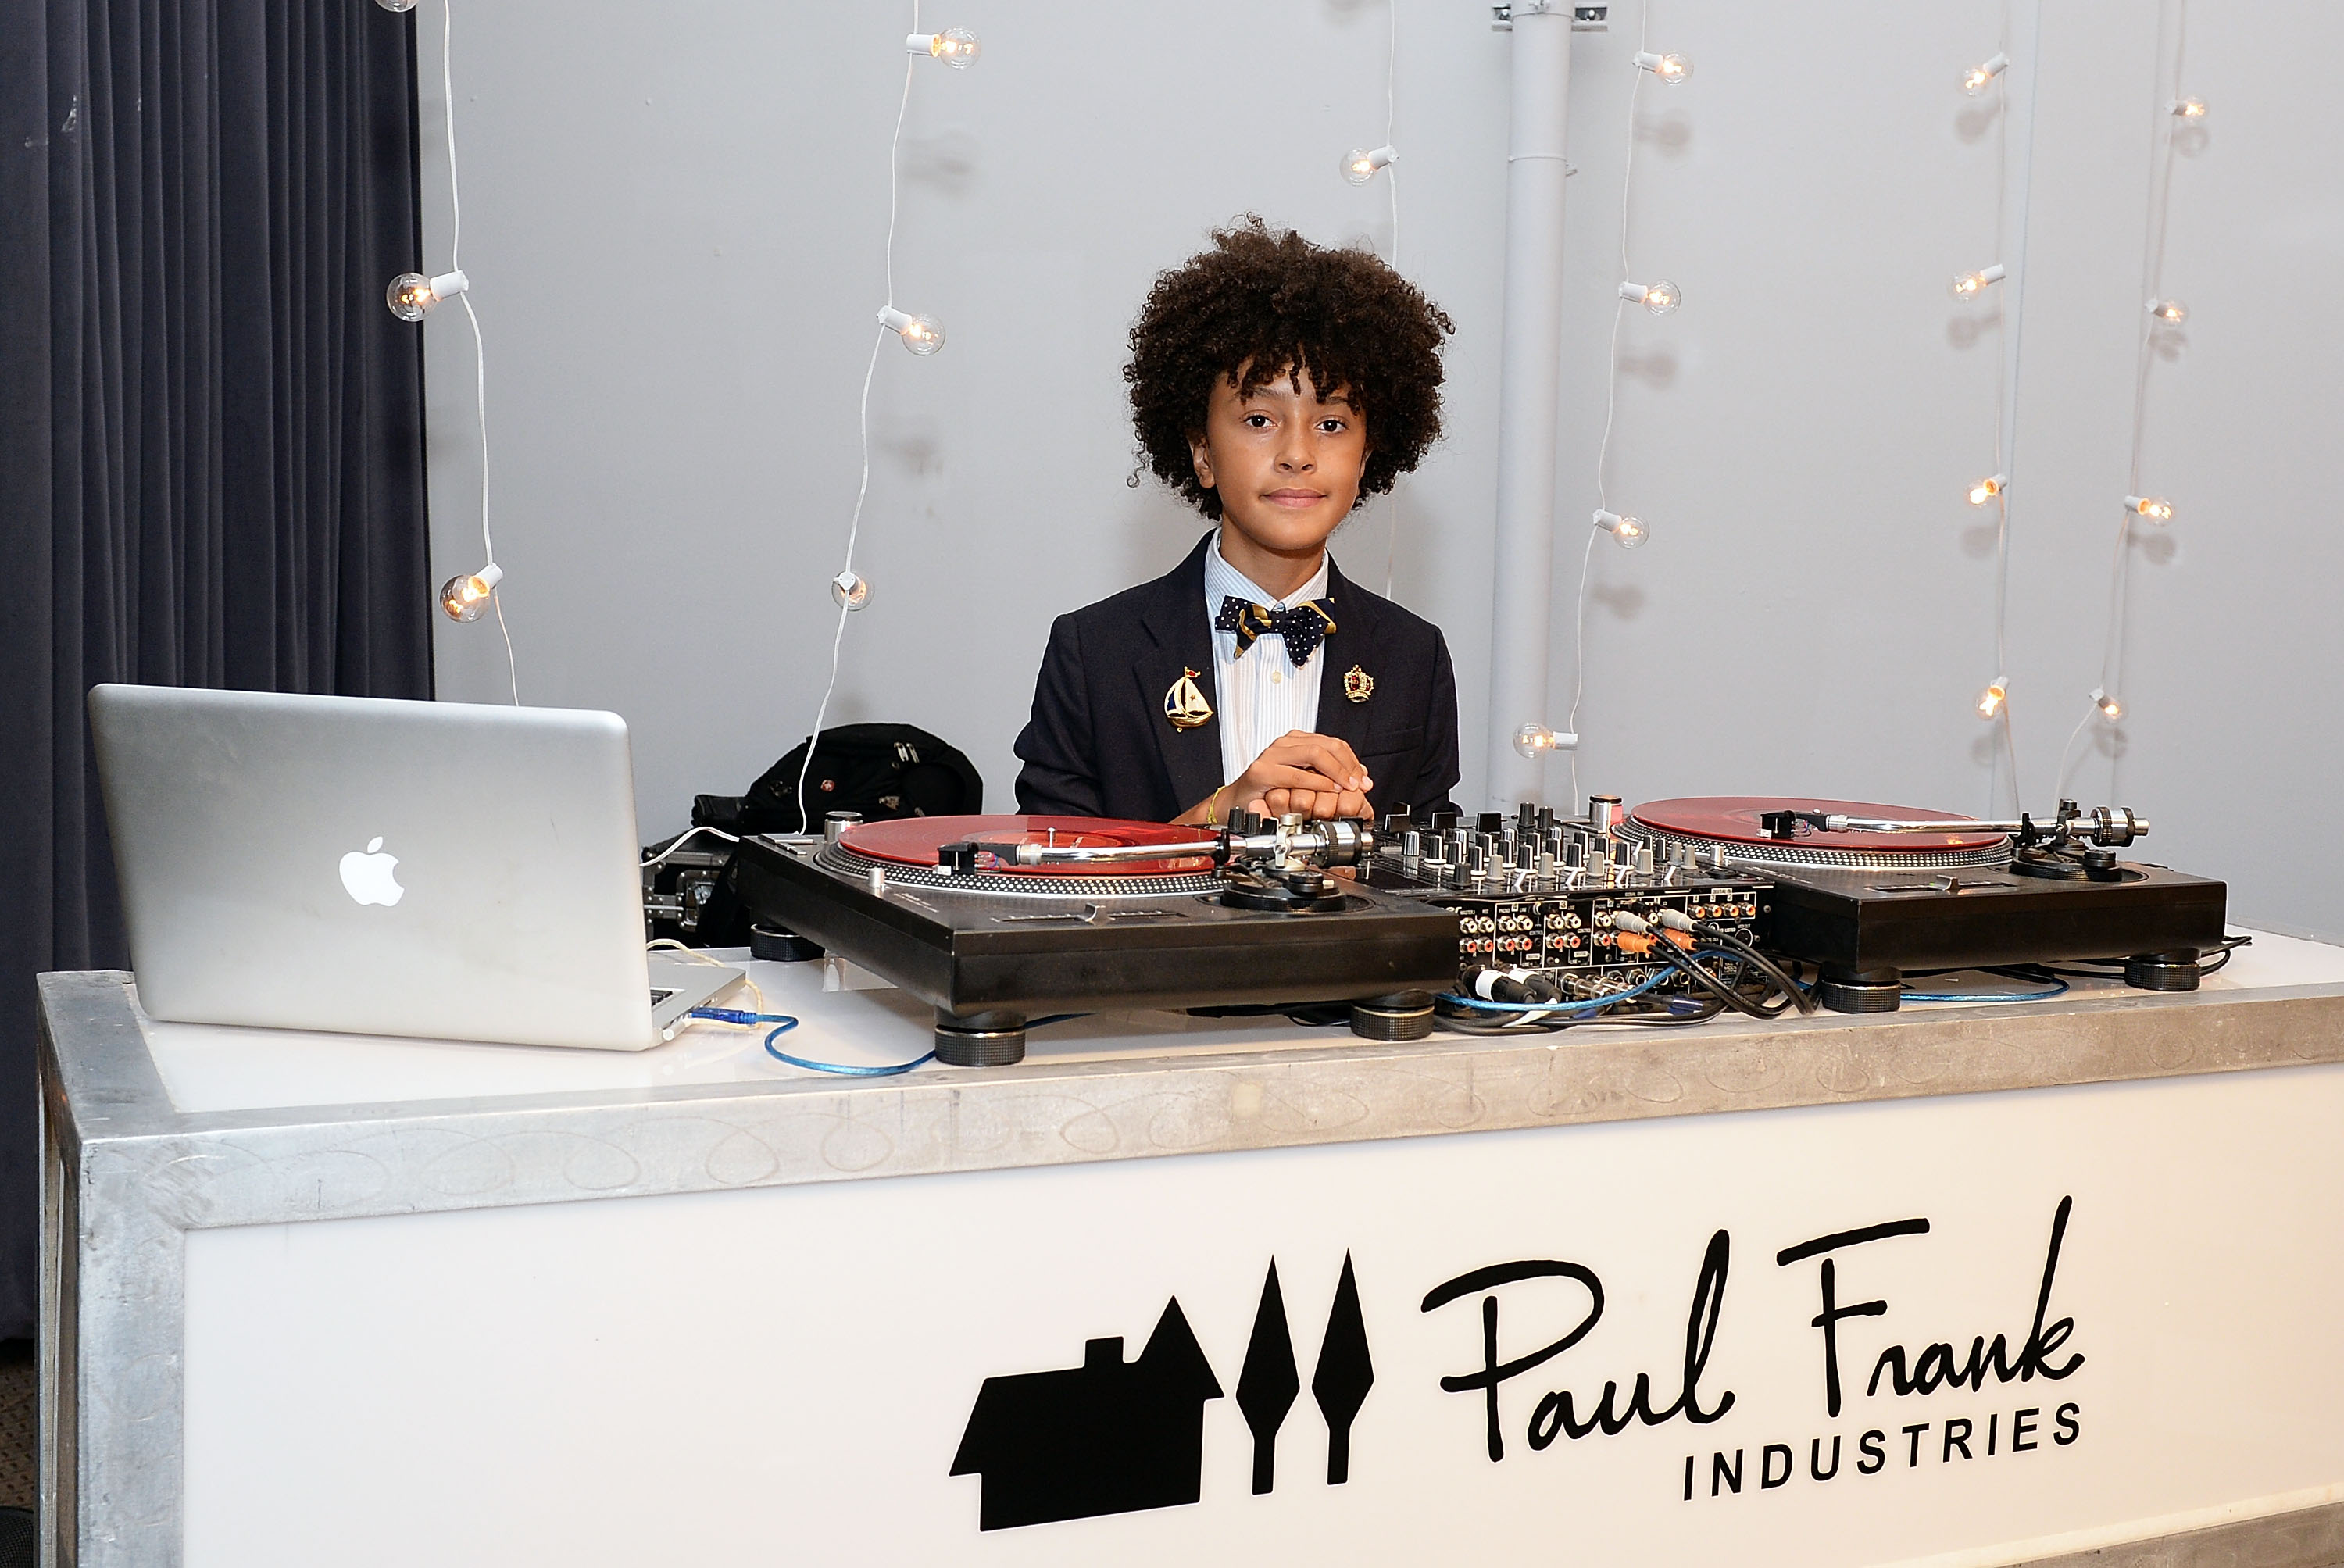 NEW YORK, NY - SEPTEMBER 10: DJ Fulano attends Paul Frank Industries' debut of children's Spring/Summer 2016 collection at New York Fashion Week on September 10, 2015 in New York City. (Photo by Slaven Vlasic/Getty Images for Paul Frank Industries)